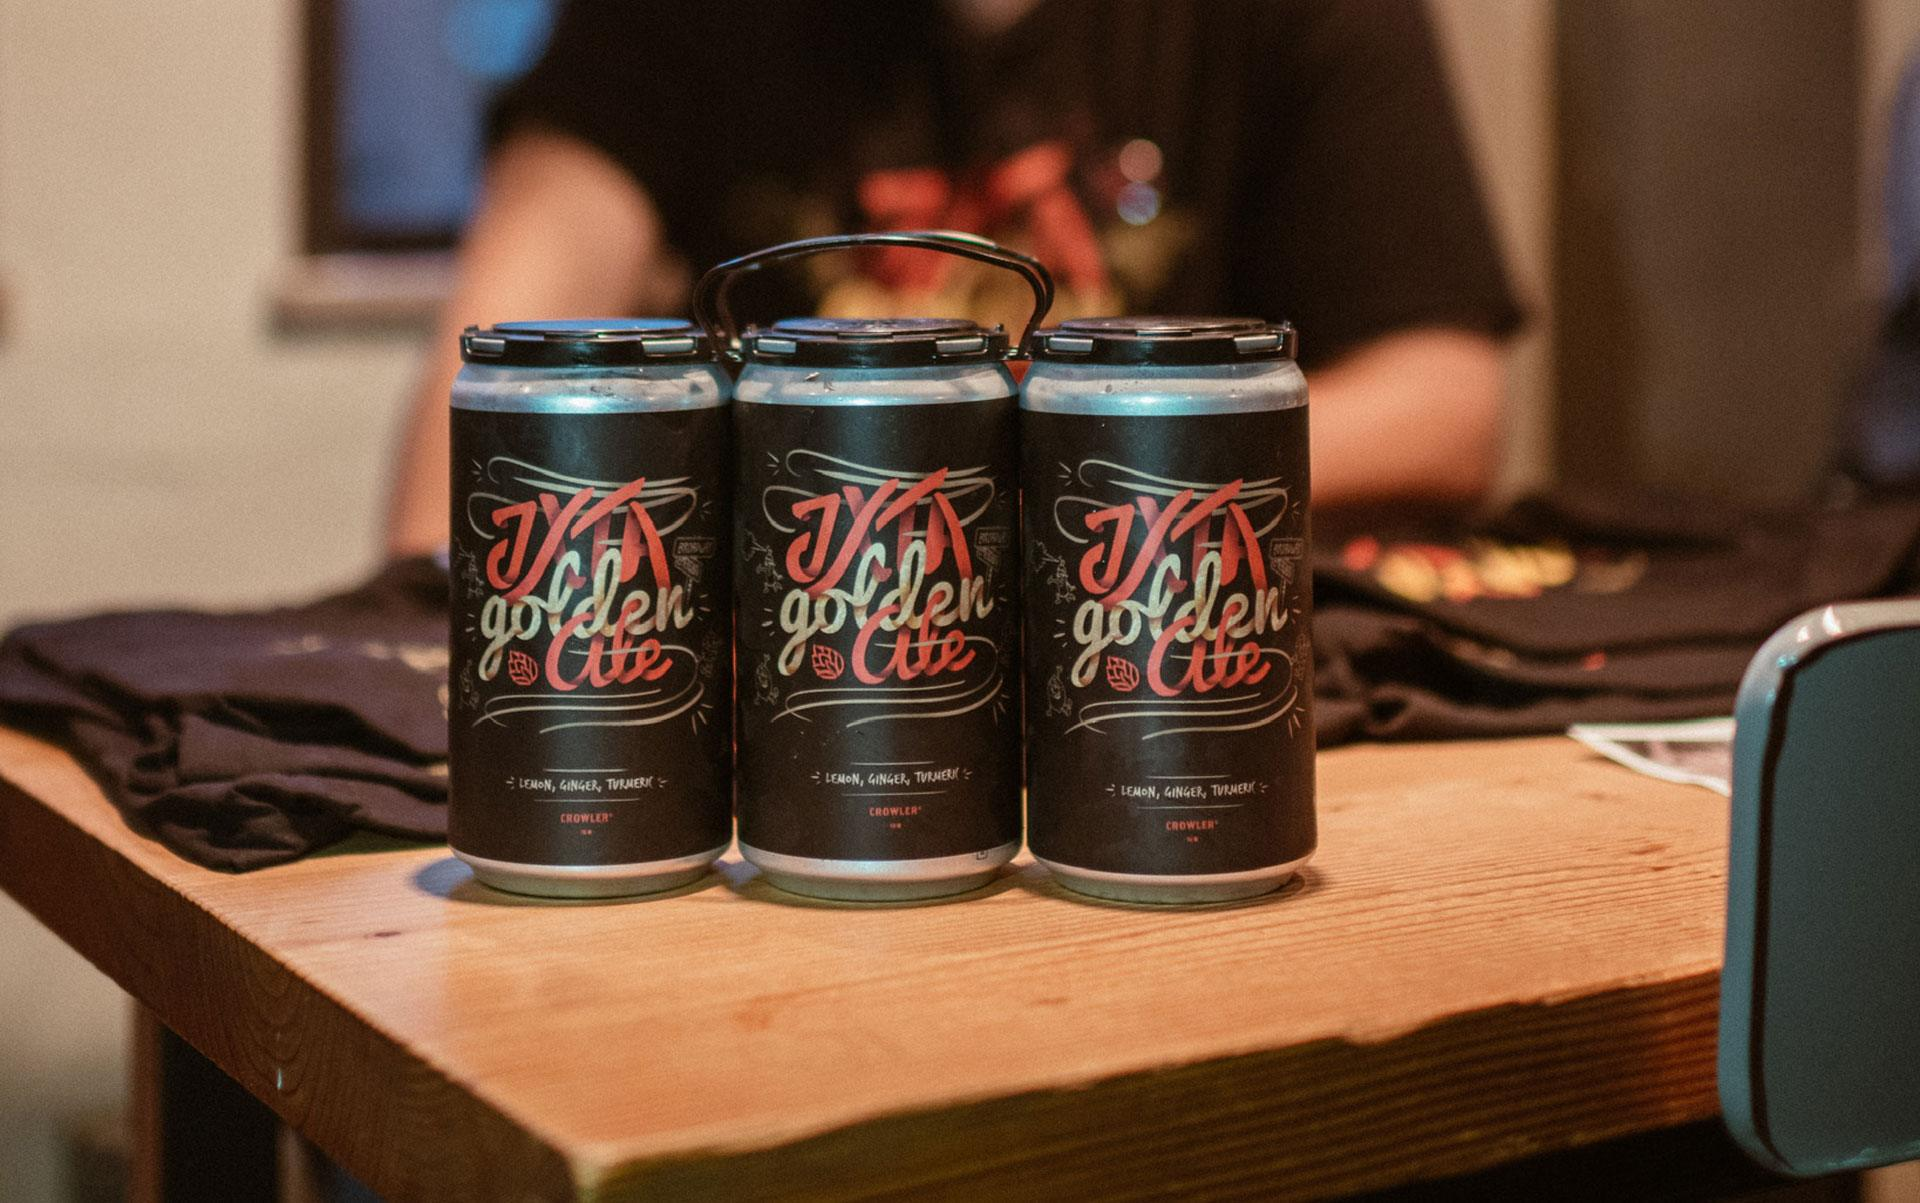 Three drink cans with the same illustrative logo with the words JXTA Golden ale on each